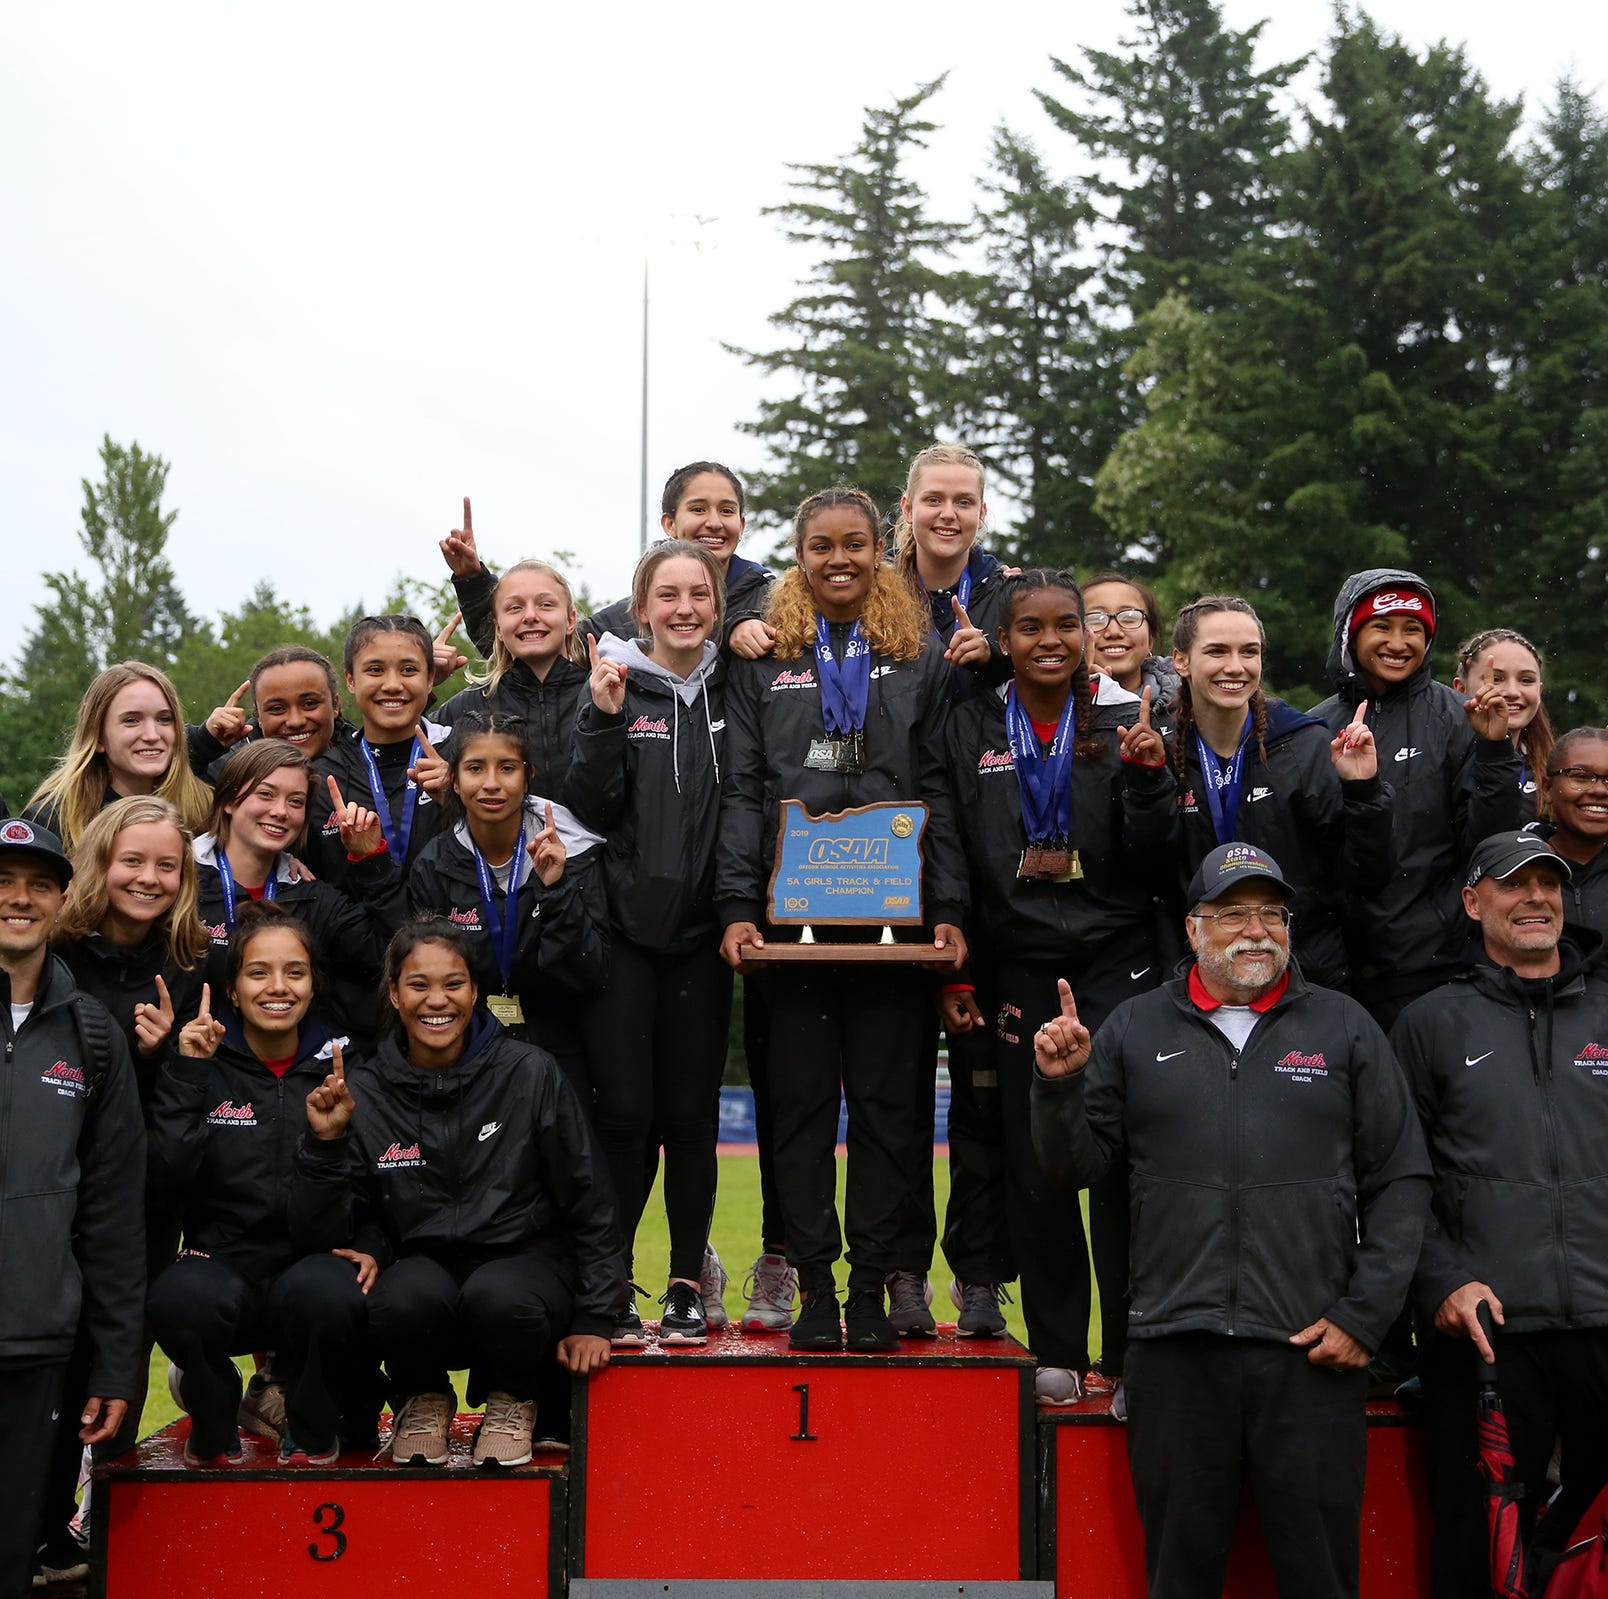 North Salem wins first team state title in 22 years